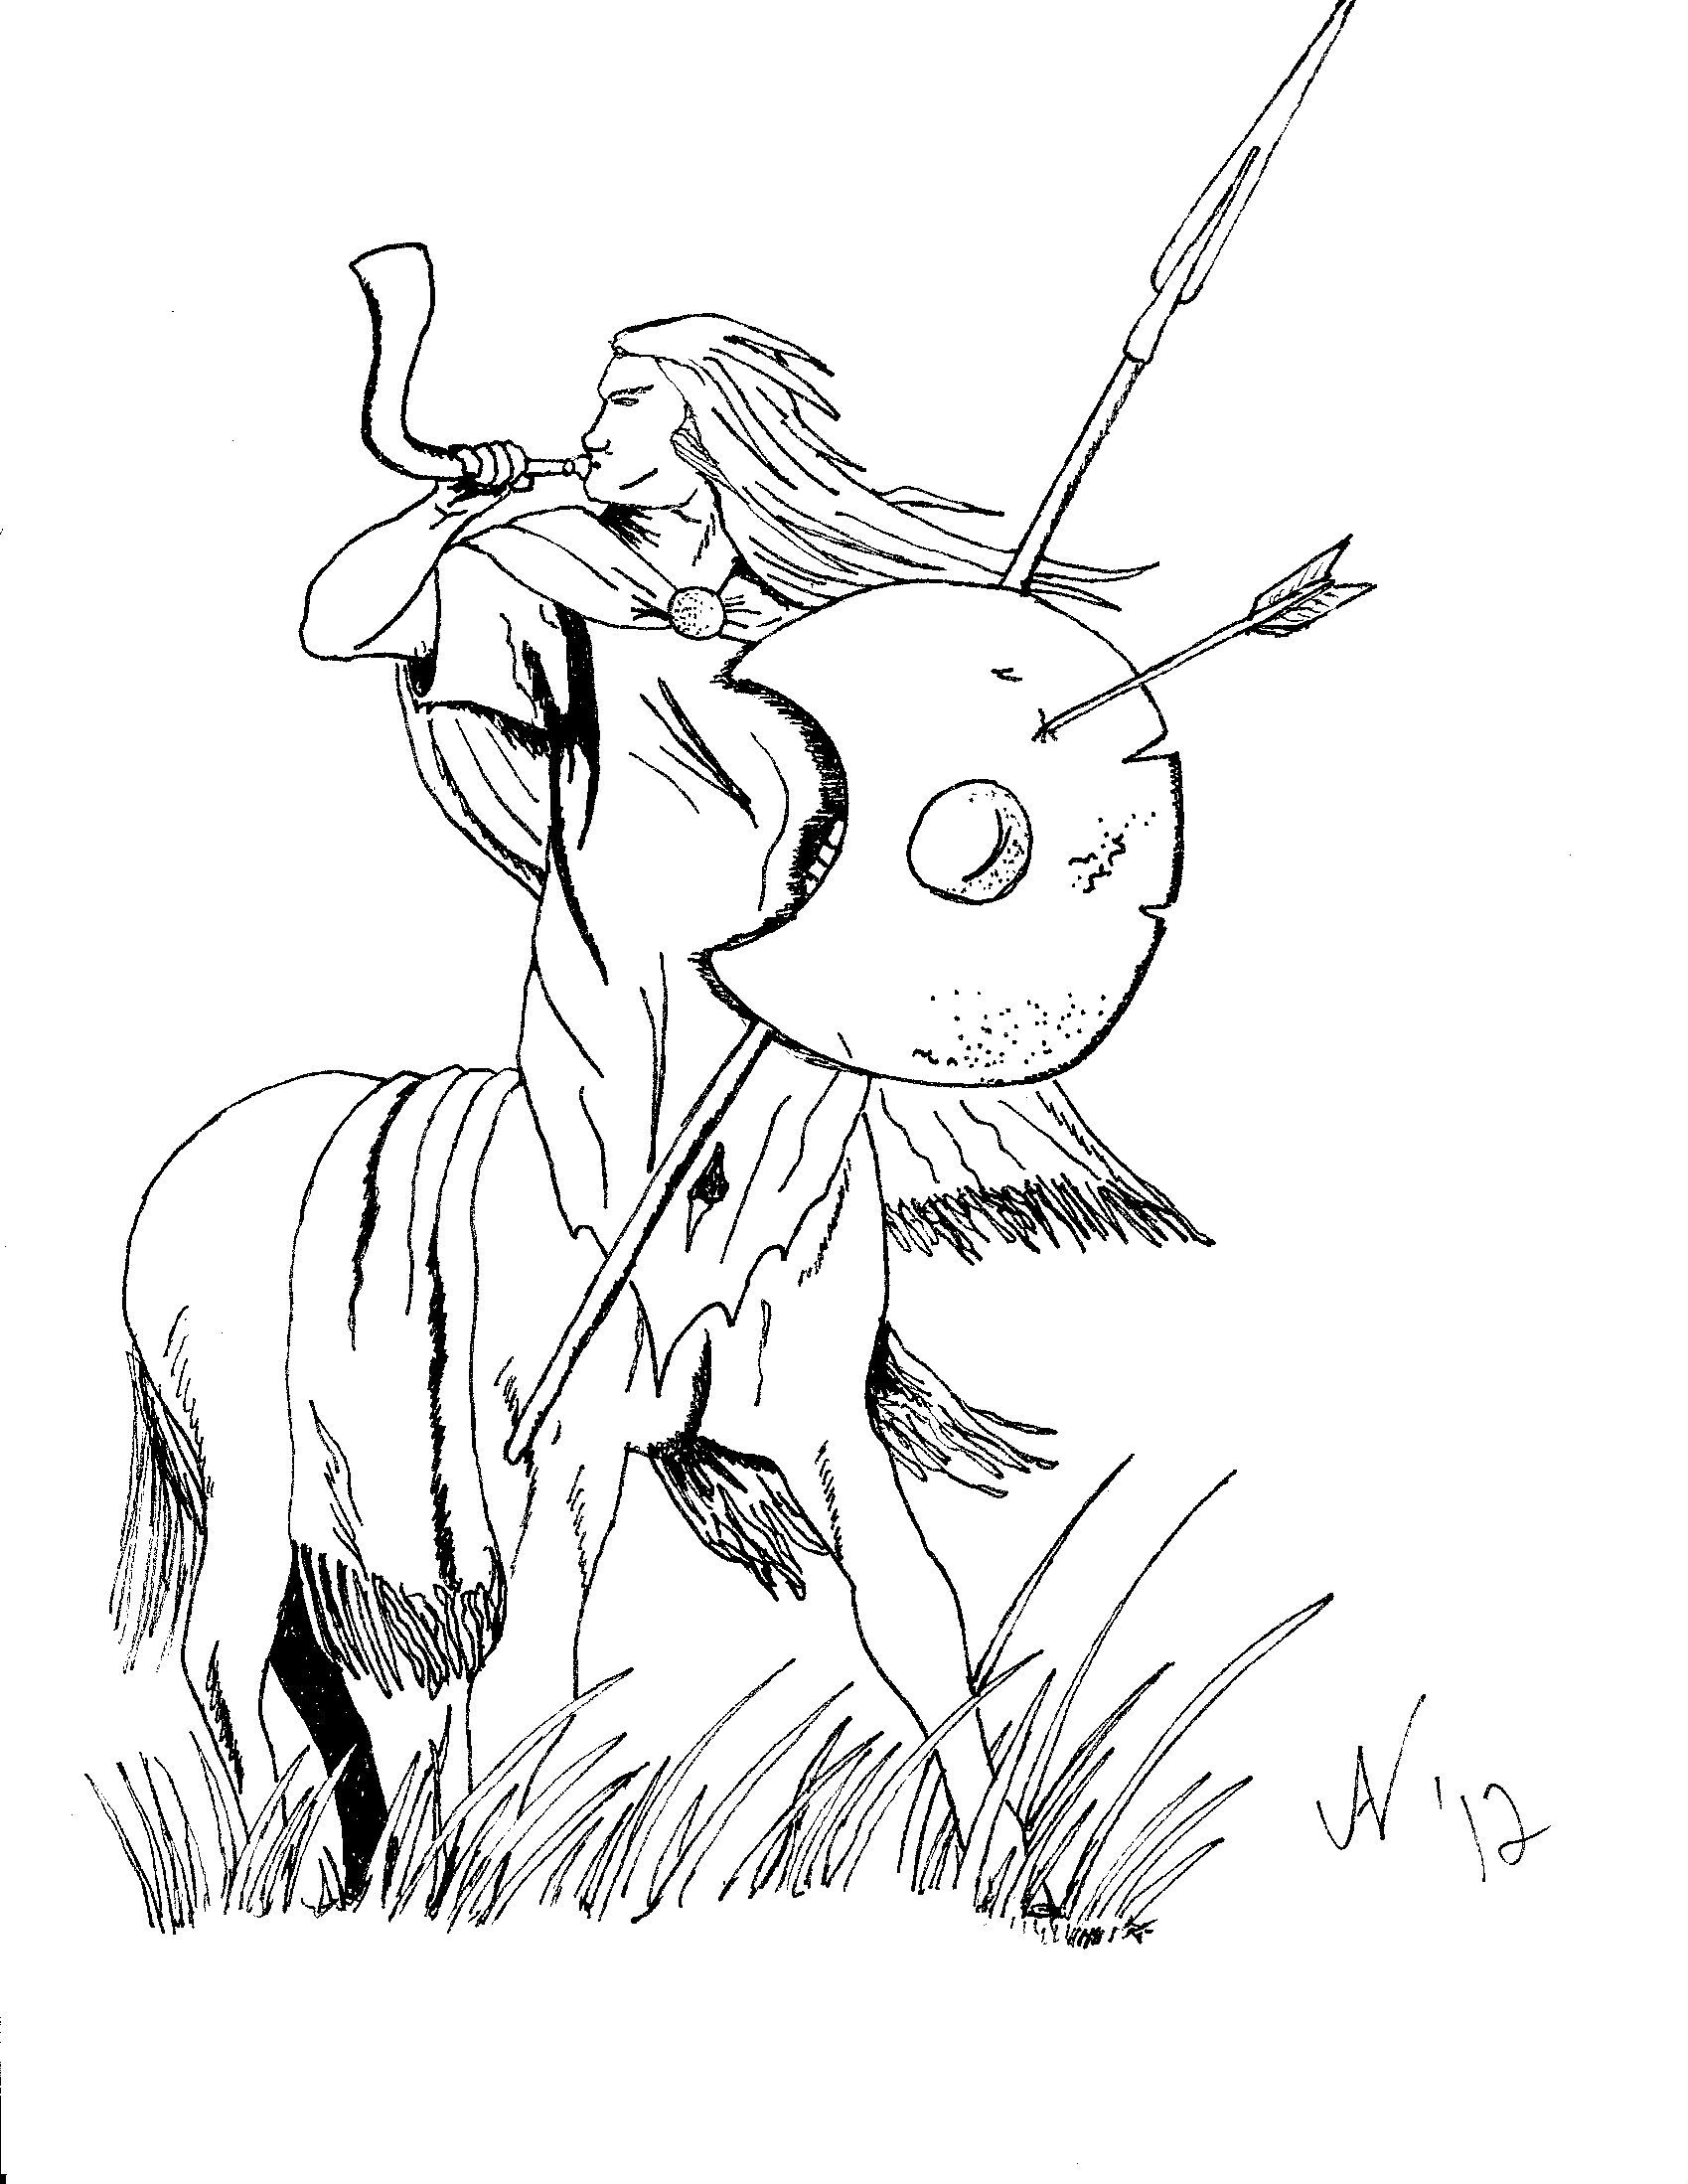 Centaurs Blowing Horns Coloring Pages For Kids Cb2 Printable Centaurs Coloring Pages For Kids